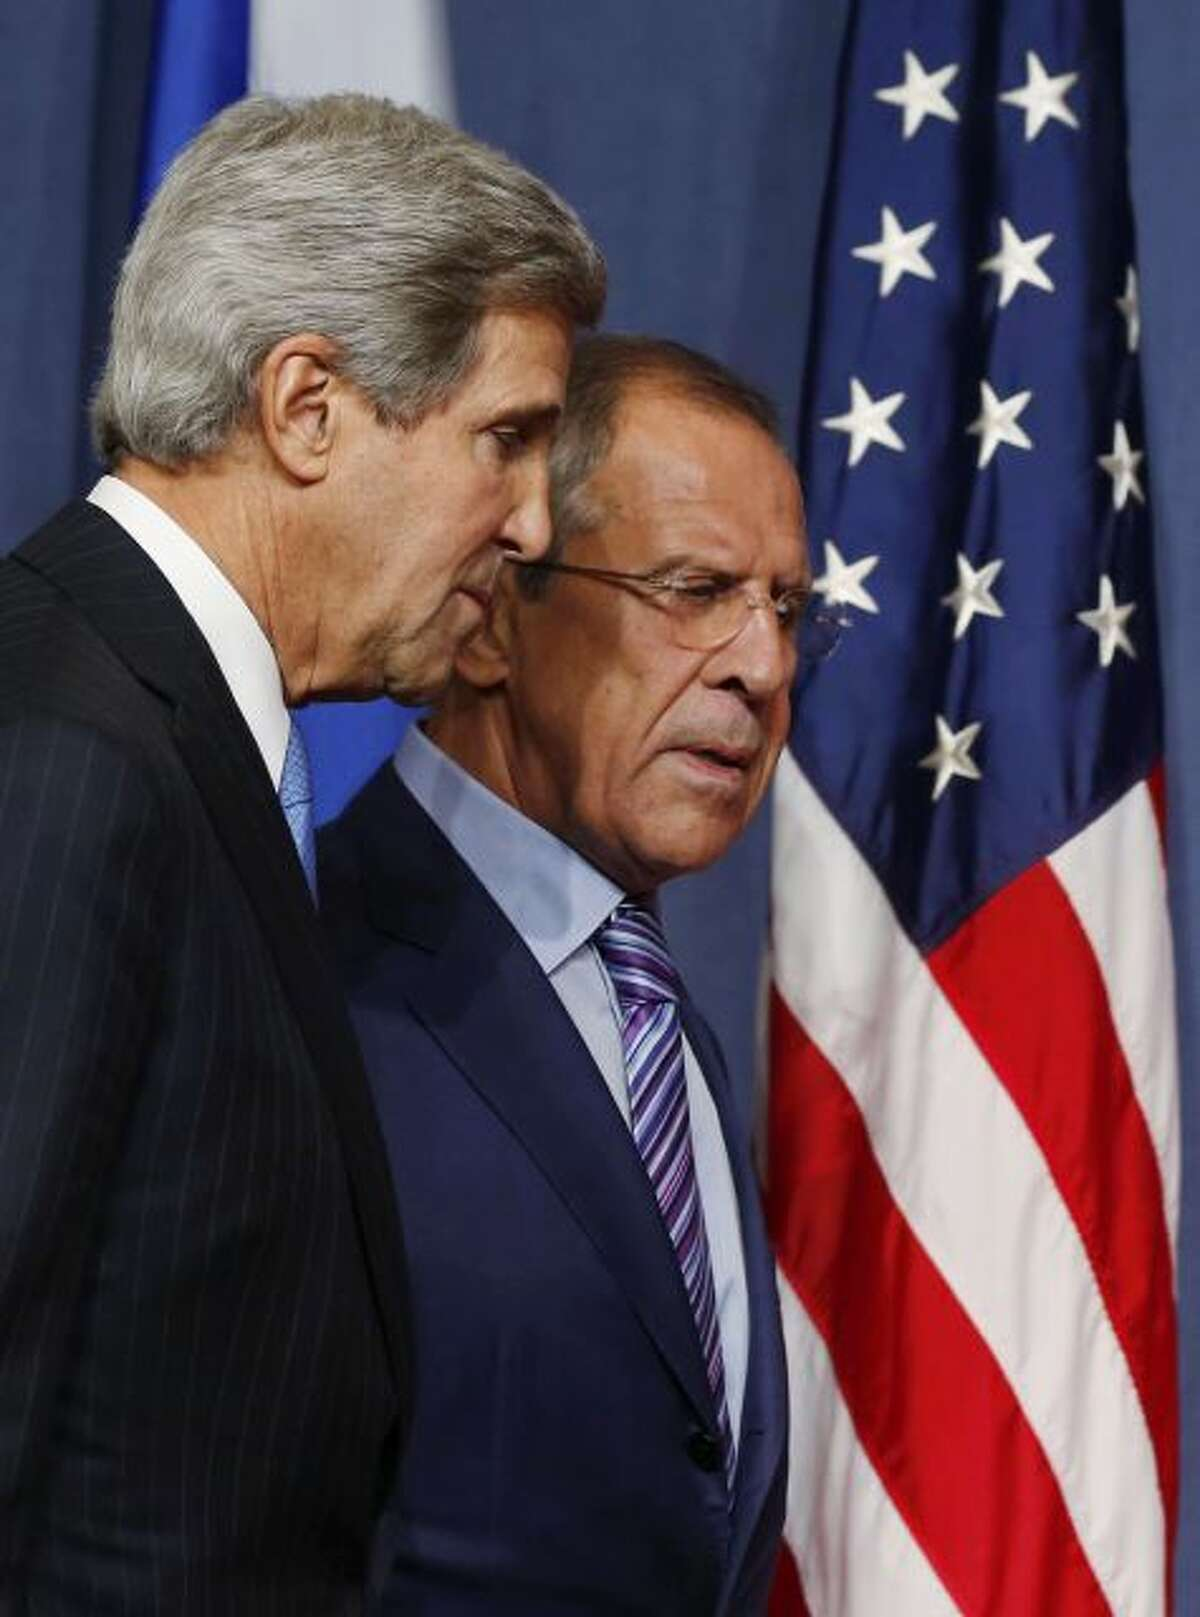 U.S. Secretary of State John Kerry and Russian Foreign Minister Sergey Lavrov, right, arrive for their press conference before their meeting to discuss the ongoing crisis in Syria, in Geneva, Switzerland, Thursday Sept. 12, 2013. Secretary of State John Kerry and his team have opened two days of meetings with their Russian counterparts in Geneva. Kerry is hoping to come away with the outlines of a plan for securing and destroying vast stockpiles of Syrian chemical weapons. (AP Photo/Larry Downing, Pool)